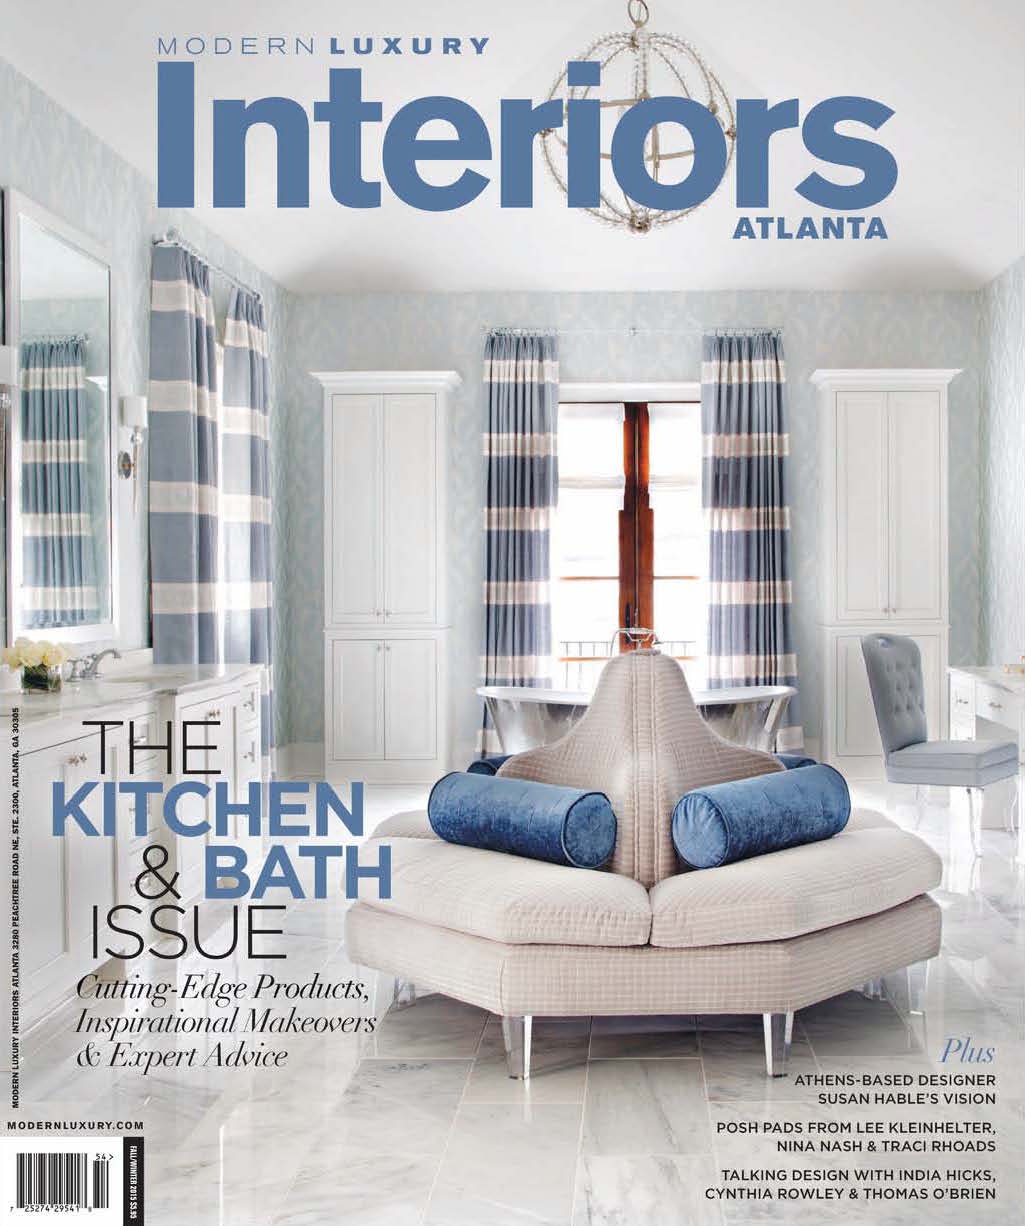 Modern Luxury Interiors Atlanta   October 2015